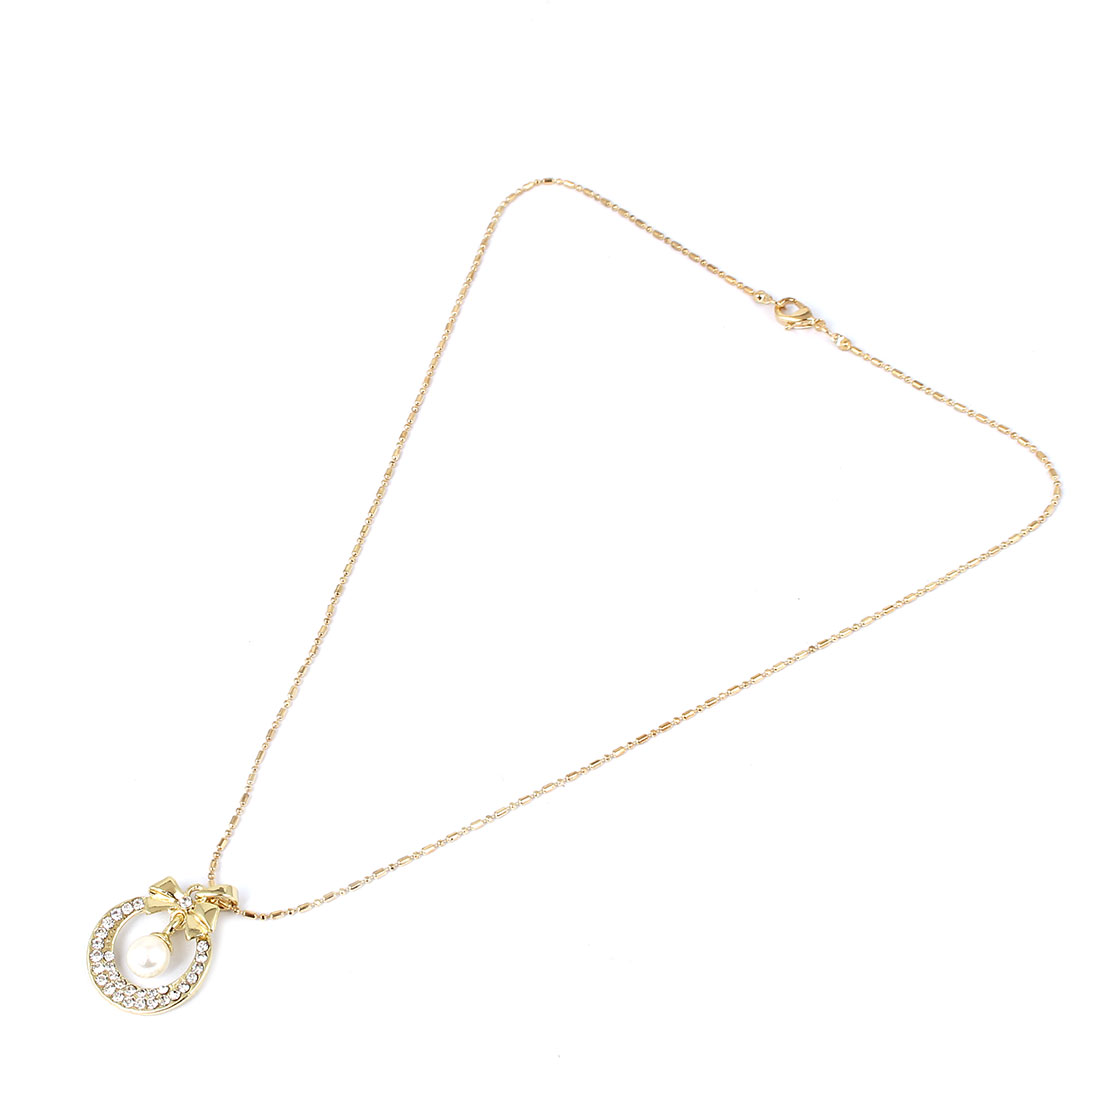 Women Imitation Pearl Pendant Gold Tone Chain Necklace Jewelry Gift